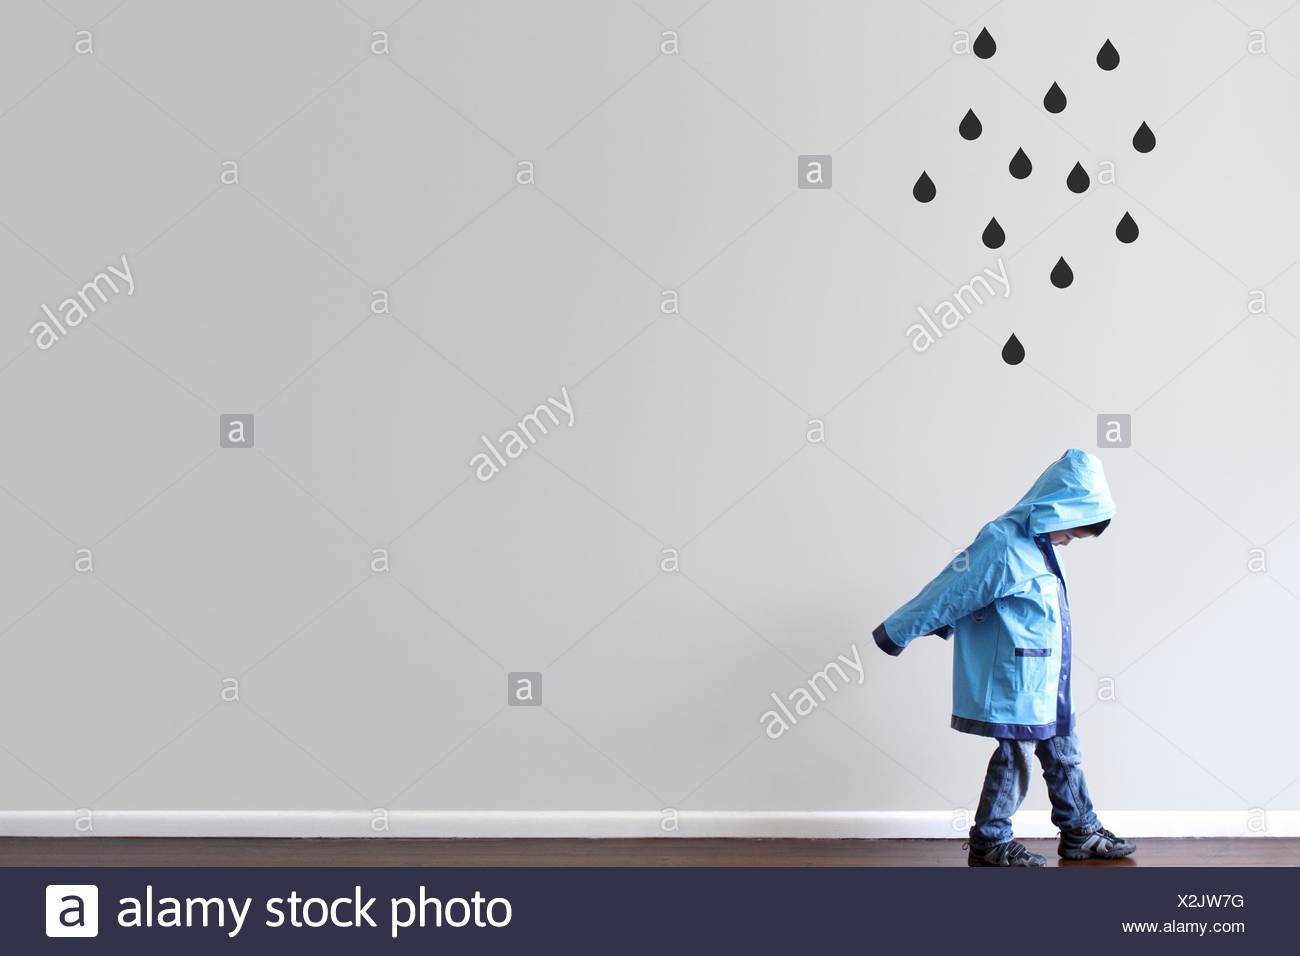 Boy in raincoat walking past a wall with black raindrops painted on the wall - Stock Image